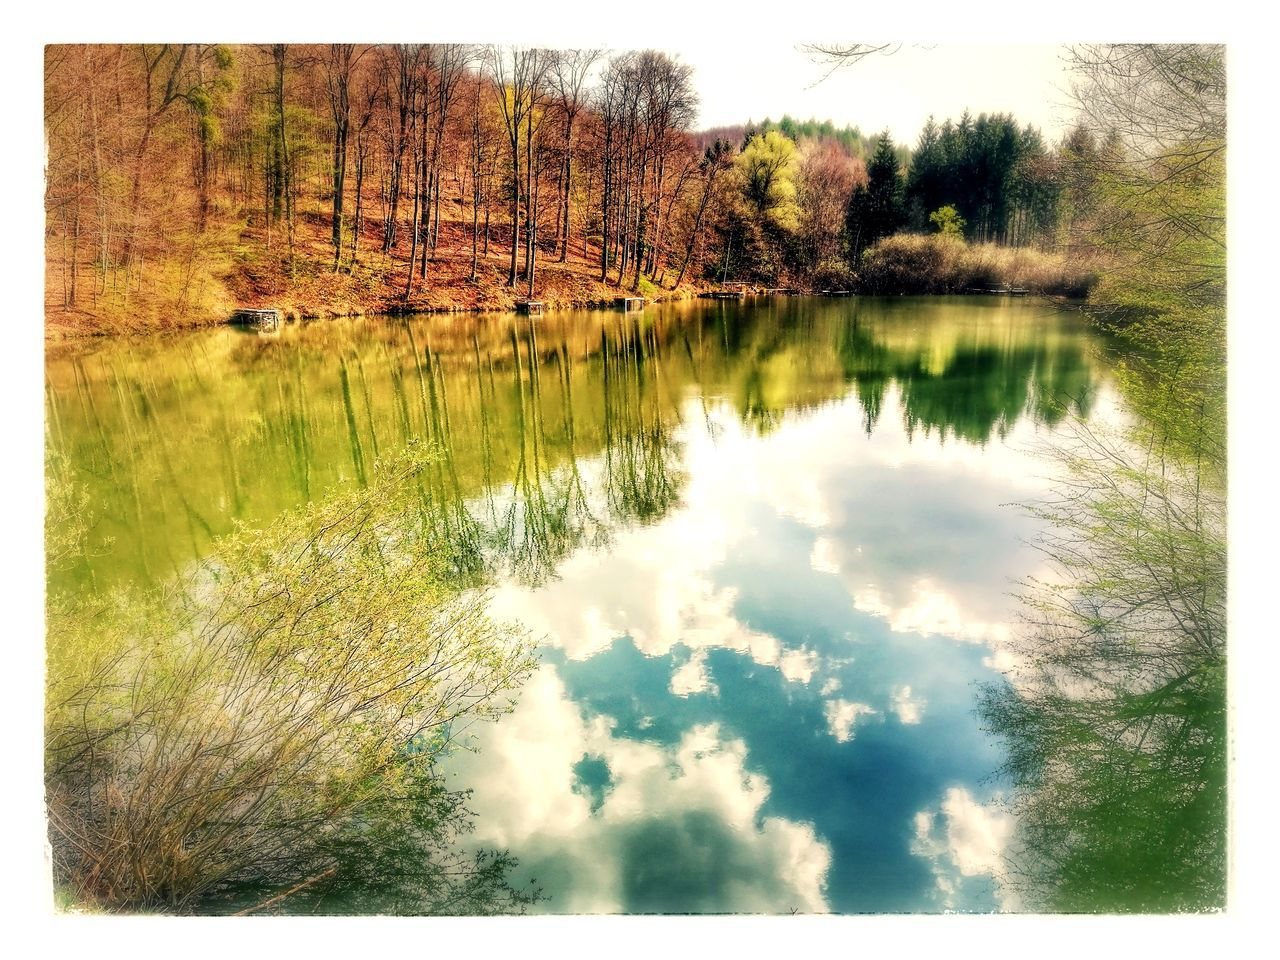 reflection, tree, water, tranquil scene, lake, nature, tranquility, beauty in nature, scenics, outdoors, no people, day, idyllic, forest, landscape, sky, grass